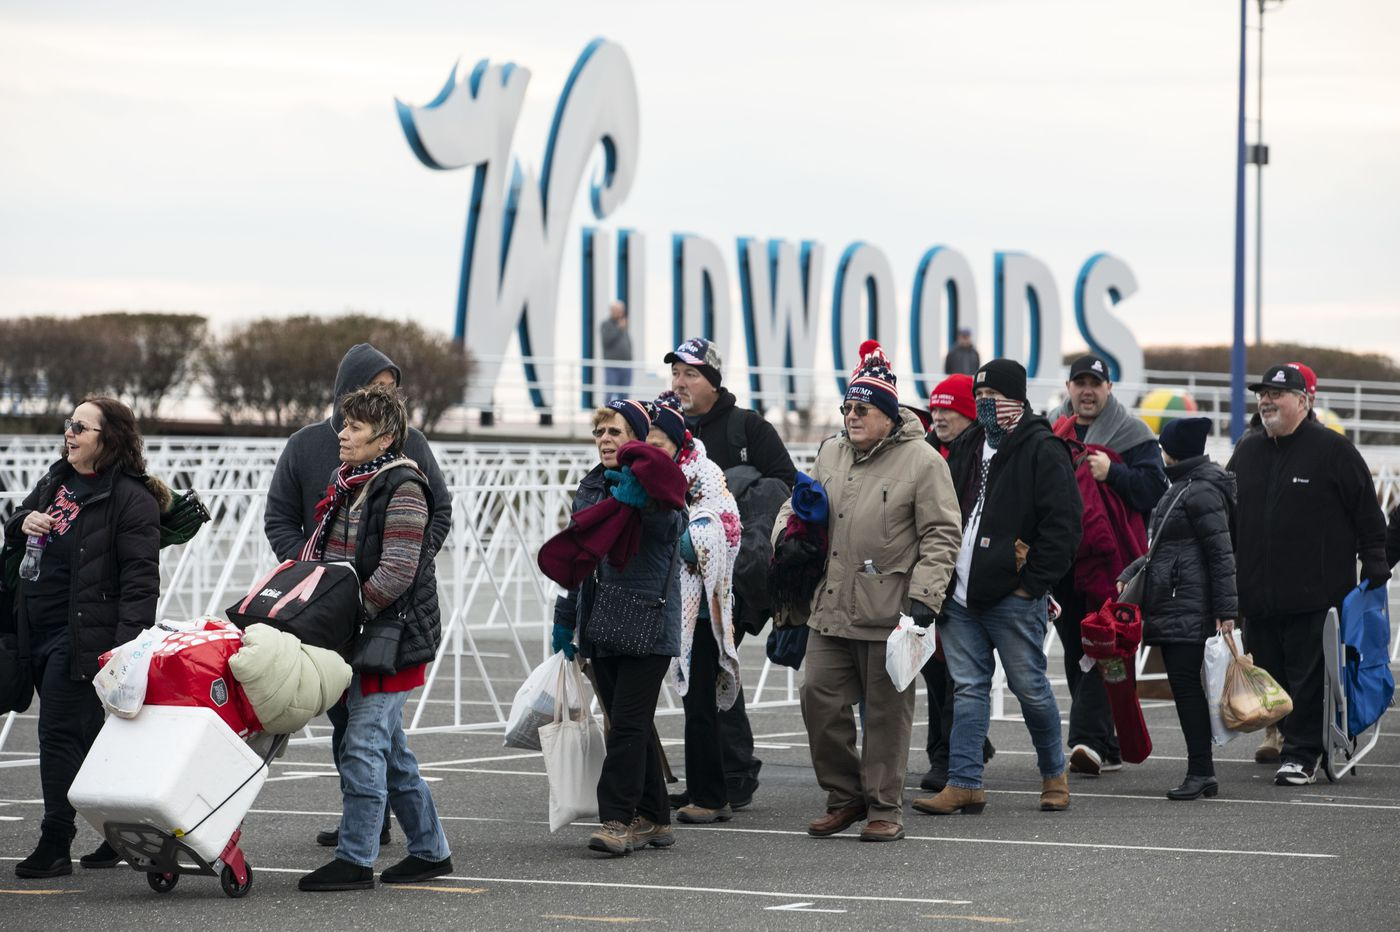 Trump fans have descended on Wildwood to camp out overnight for a seat at the rally